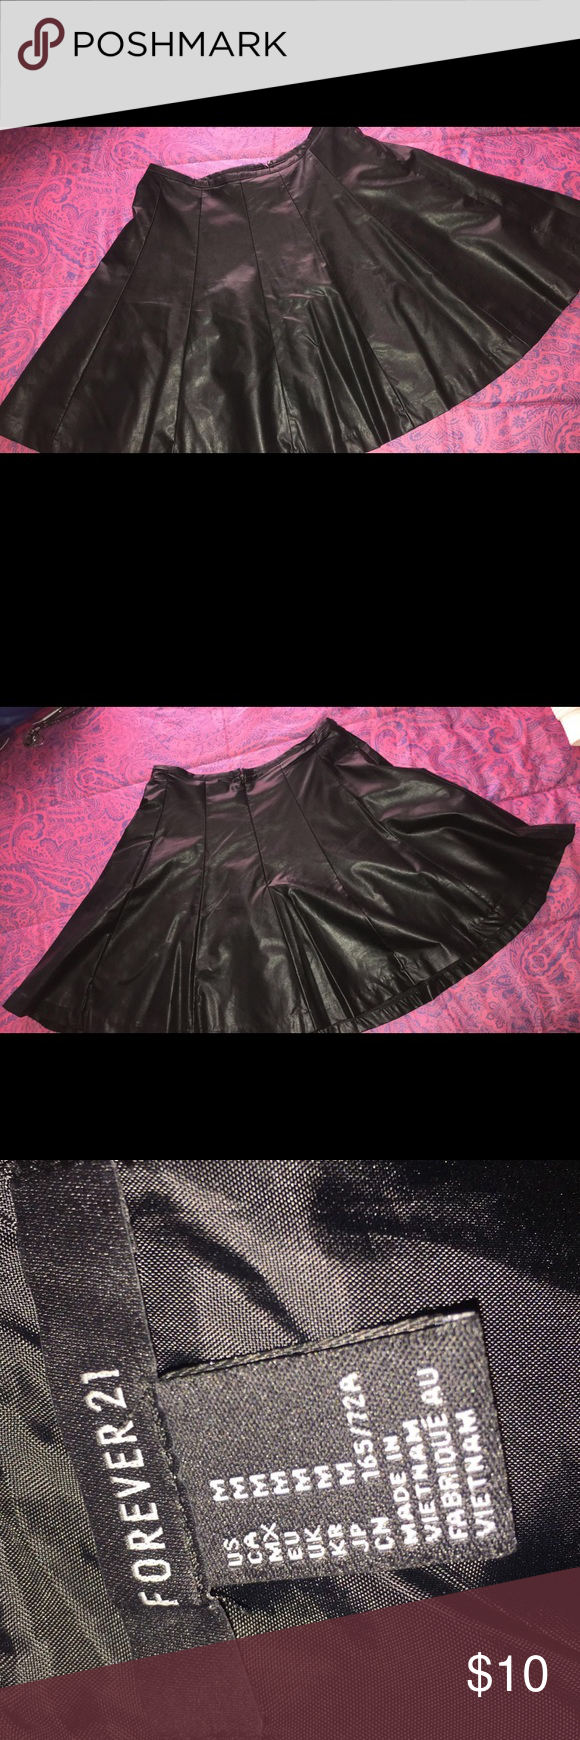 Black Leather Skirt Black leather skirt from Forever 21 Forever 21 Skirts Circle & Skater